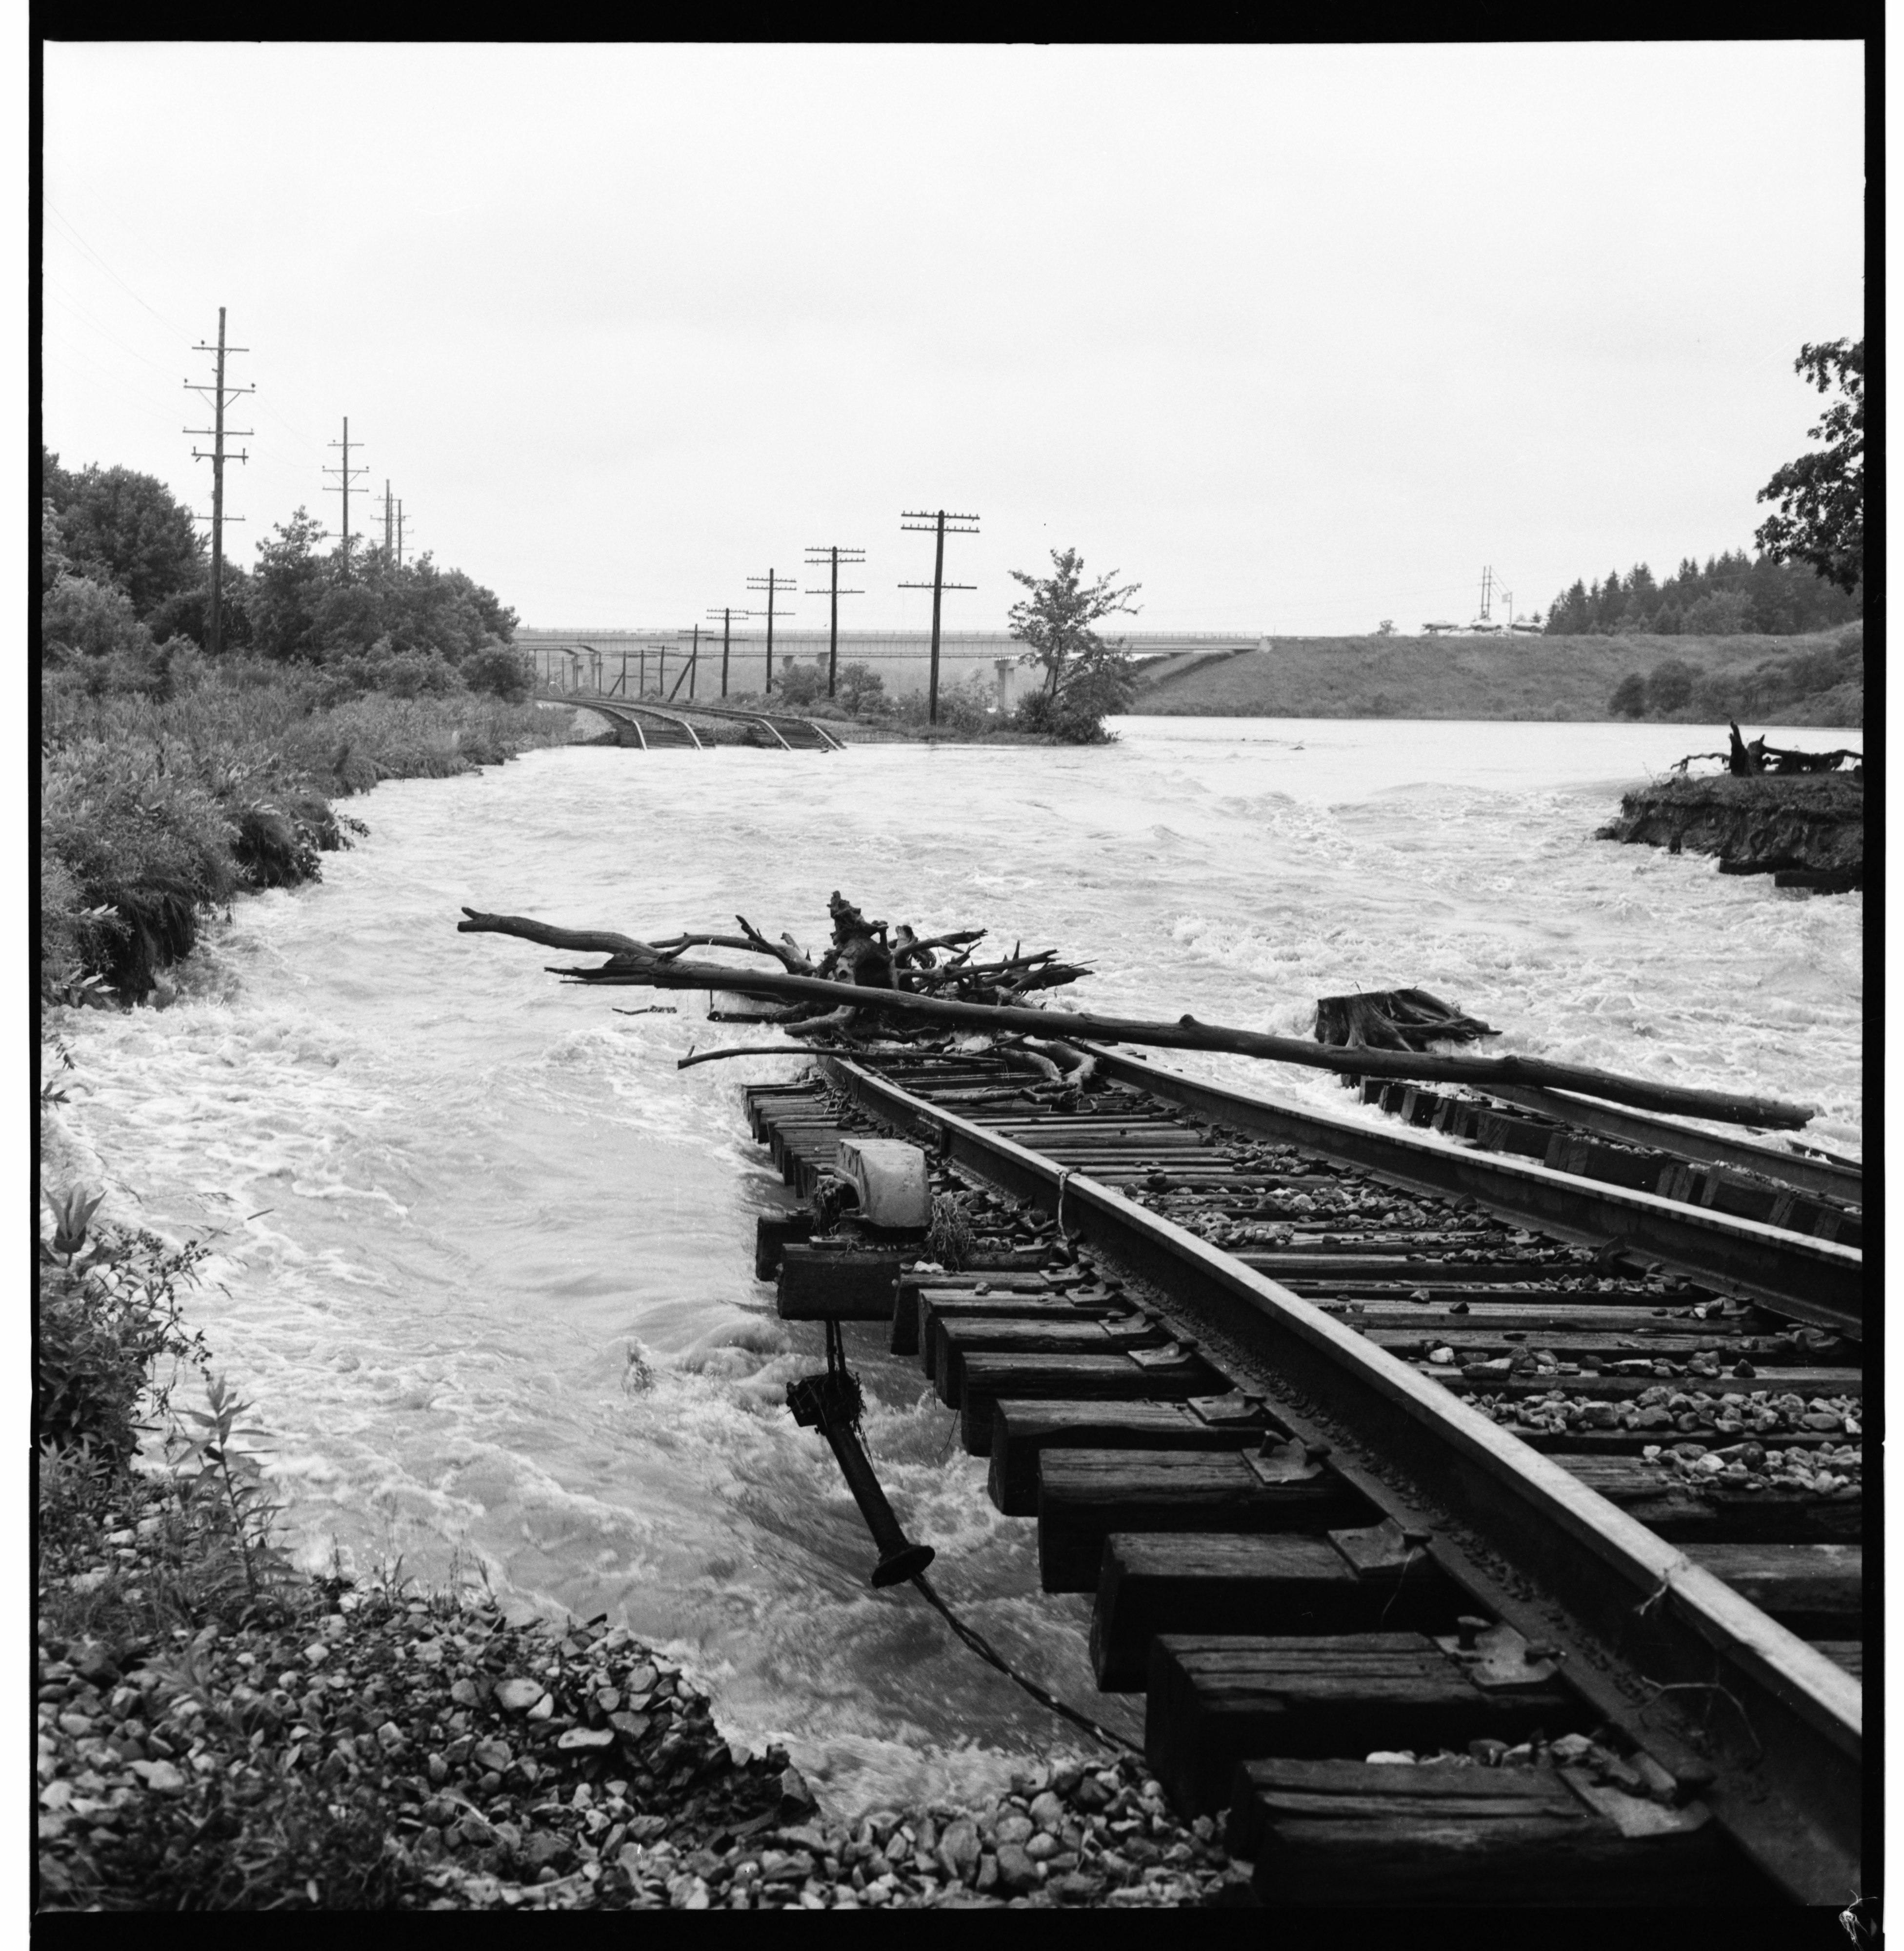 Washed Out Penn-Central Railroad Tracks, June 1968 Flood image